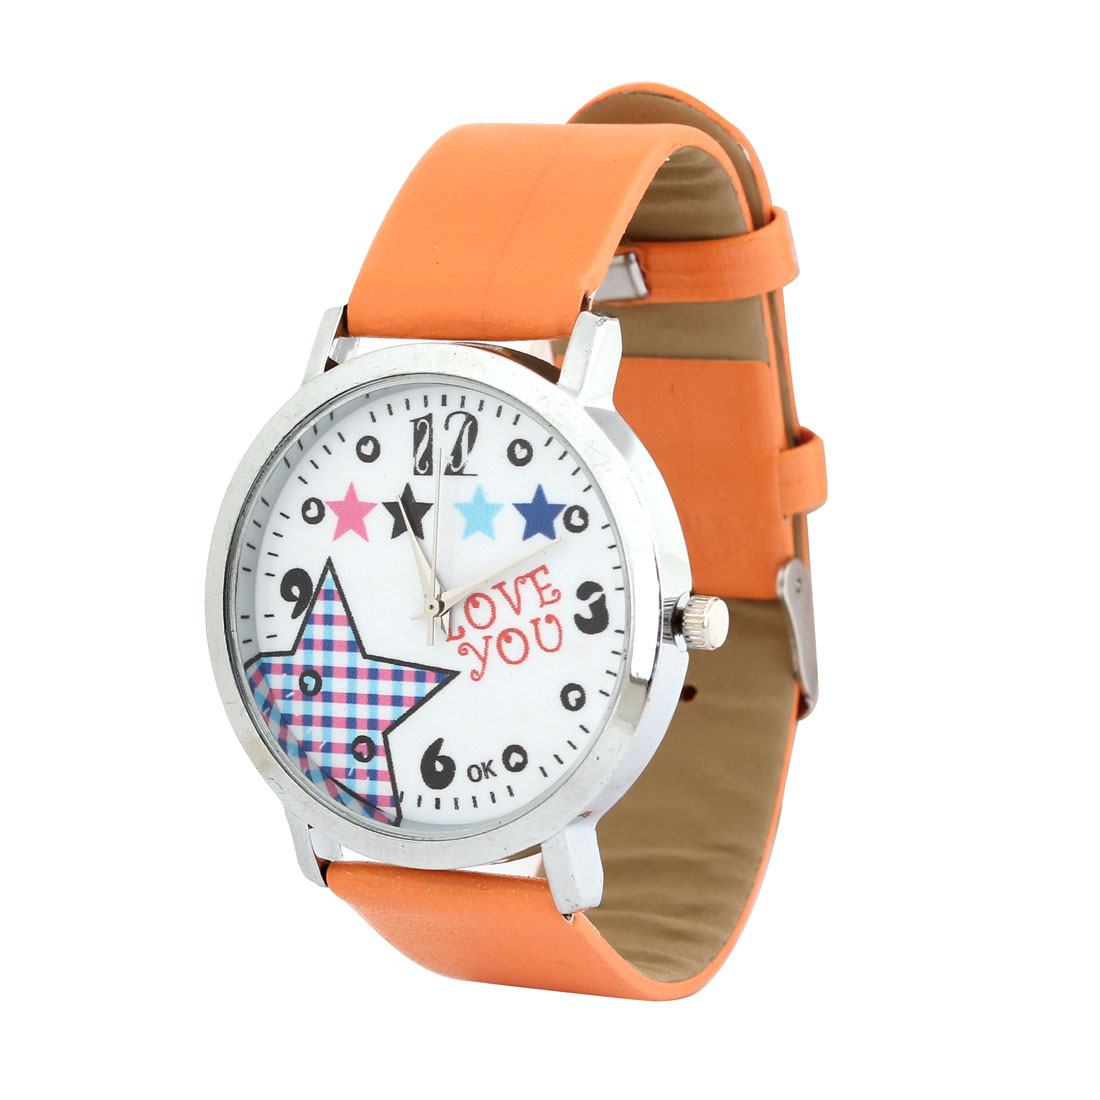 Ladies Orange Faux Leather Band pentagram Pattern Arabic Number Dial Watch